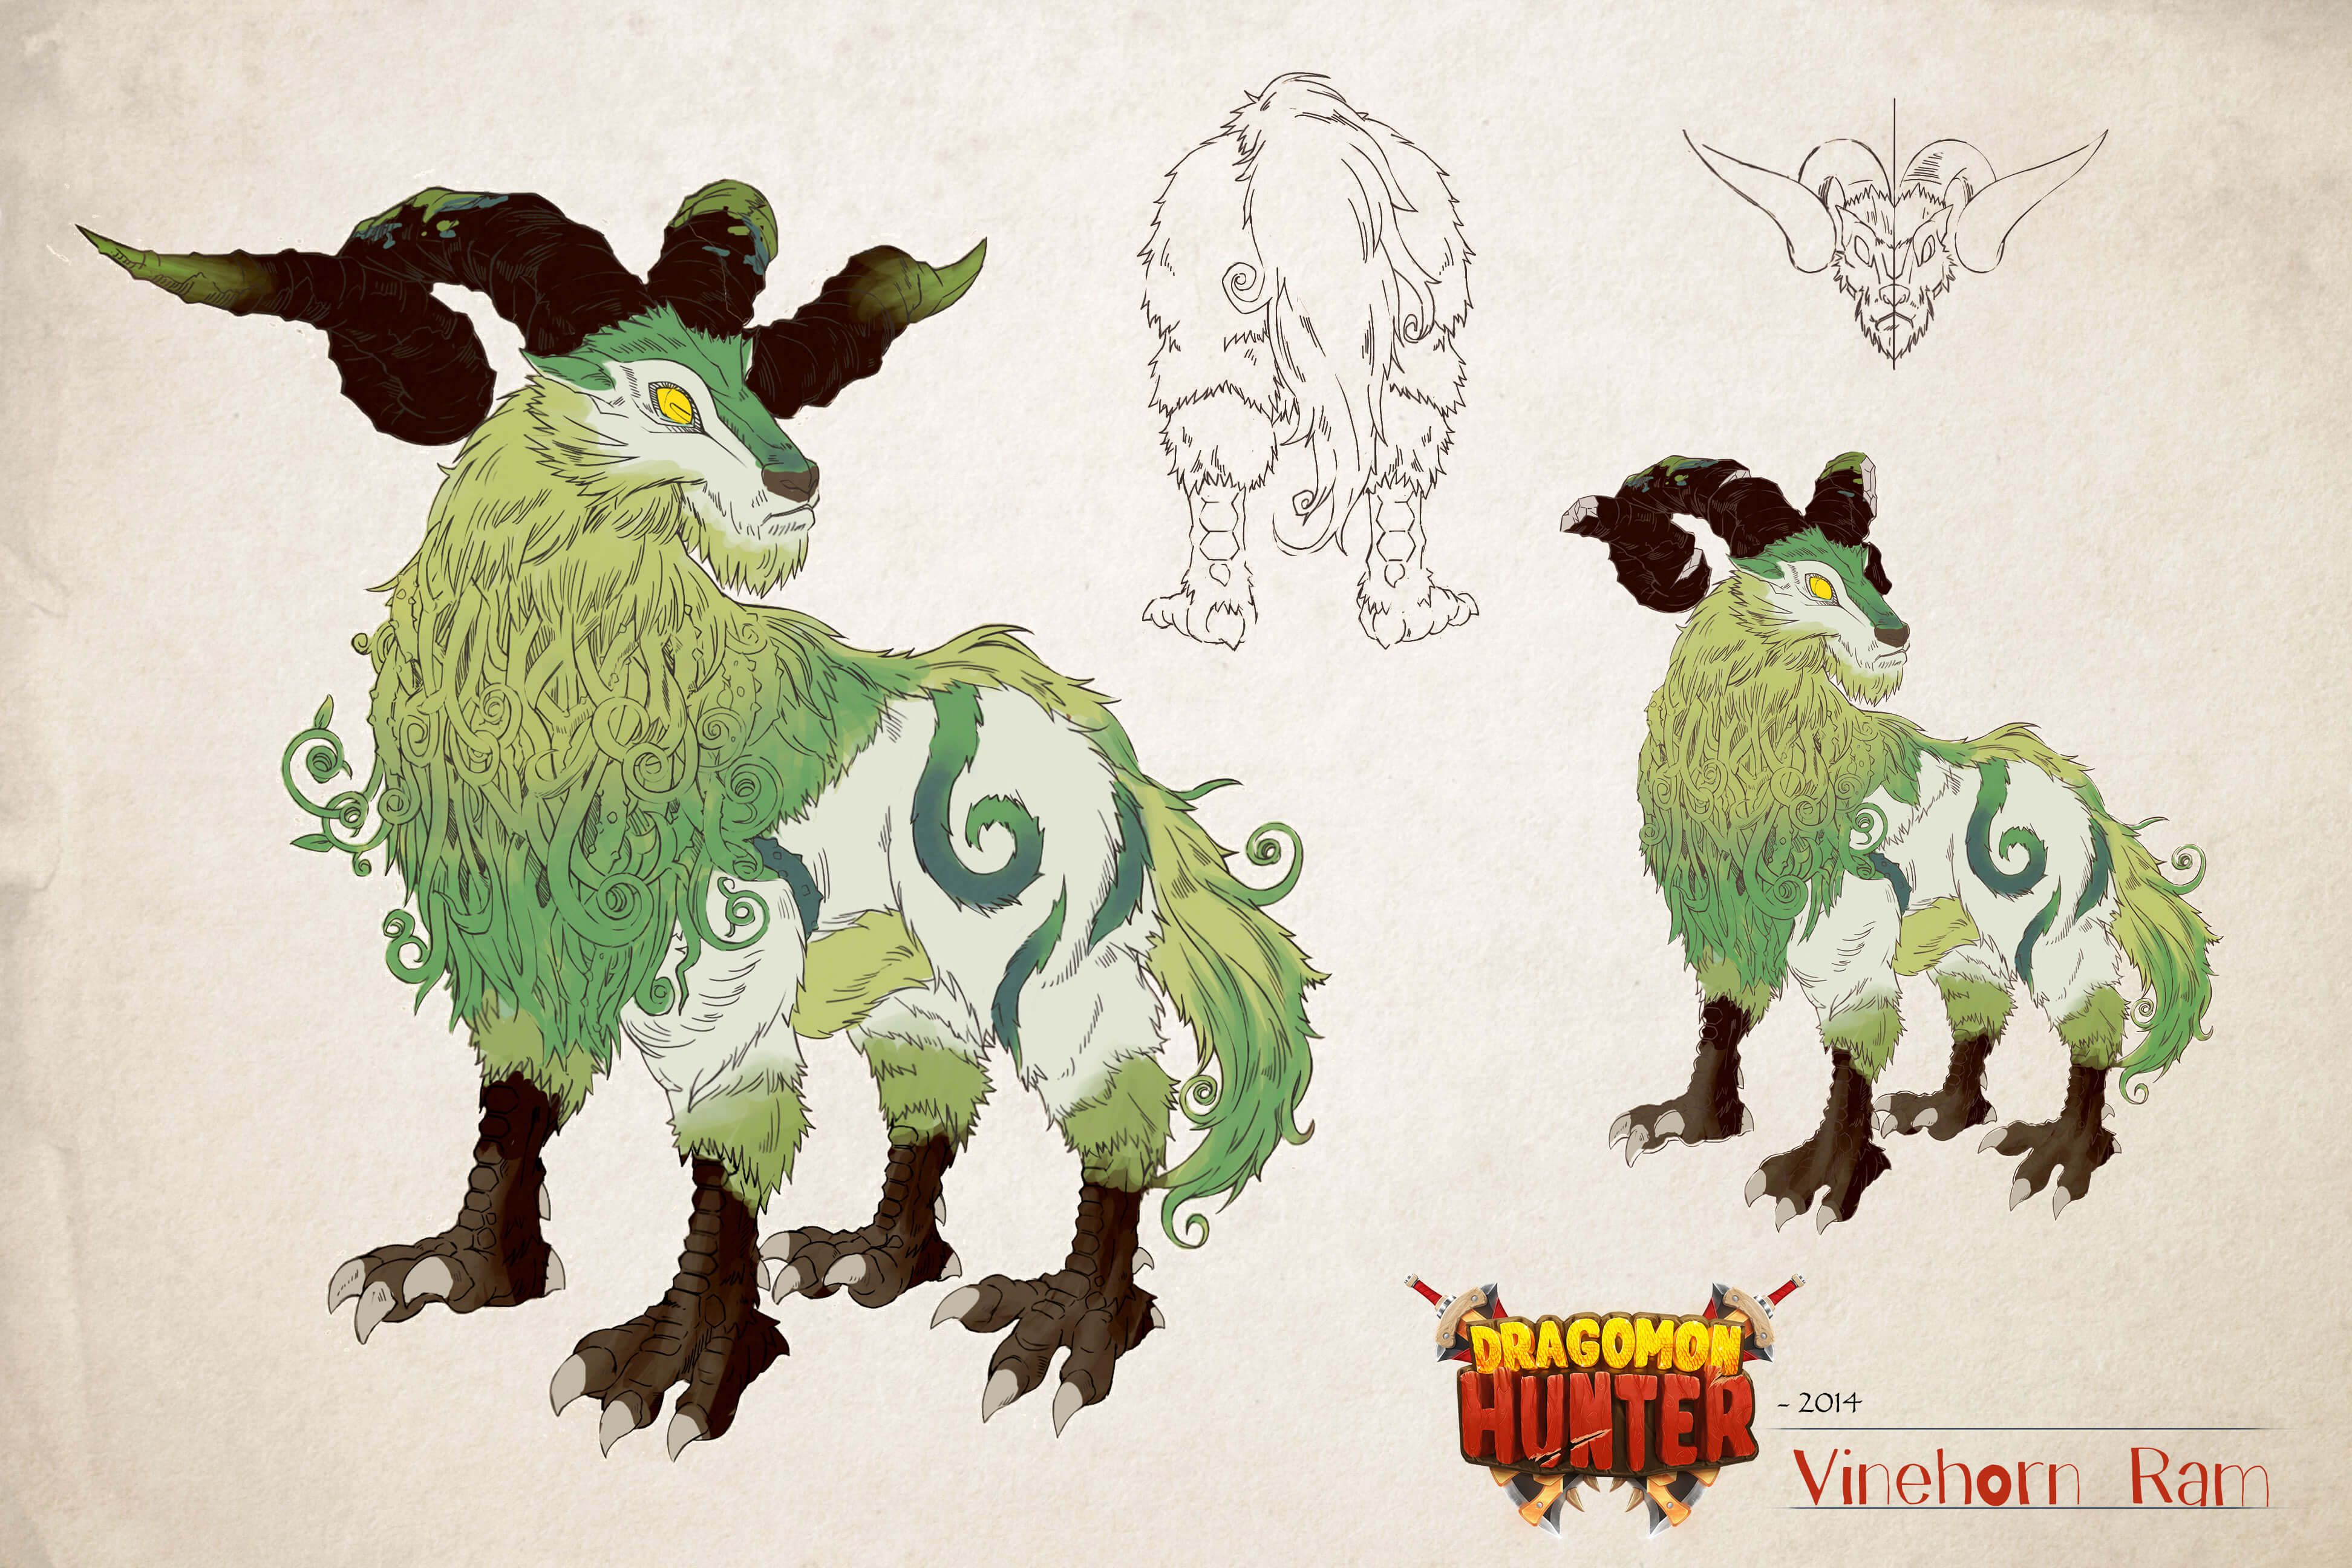 Dragomon Hunter: Anime MMO fan service by way of Germany and